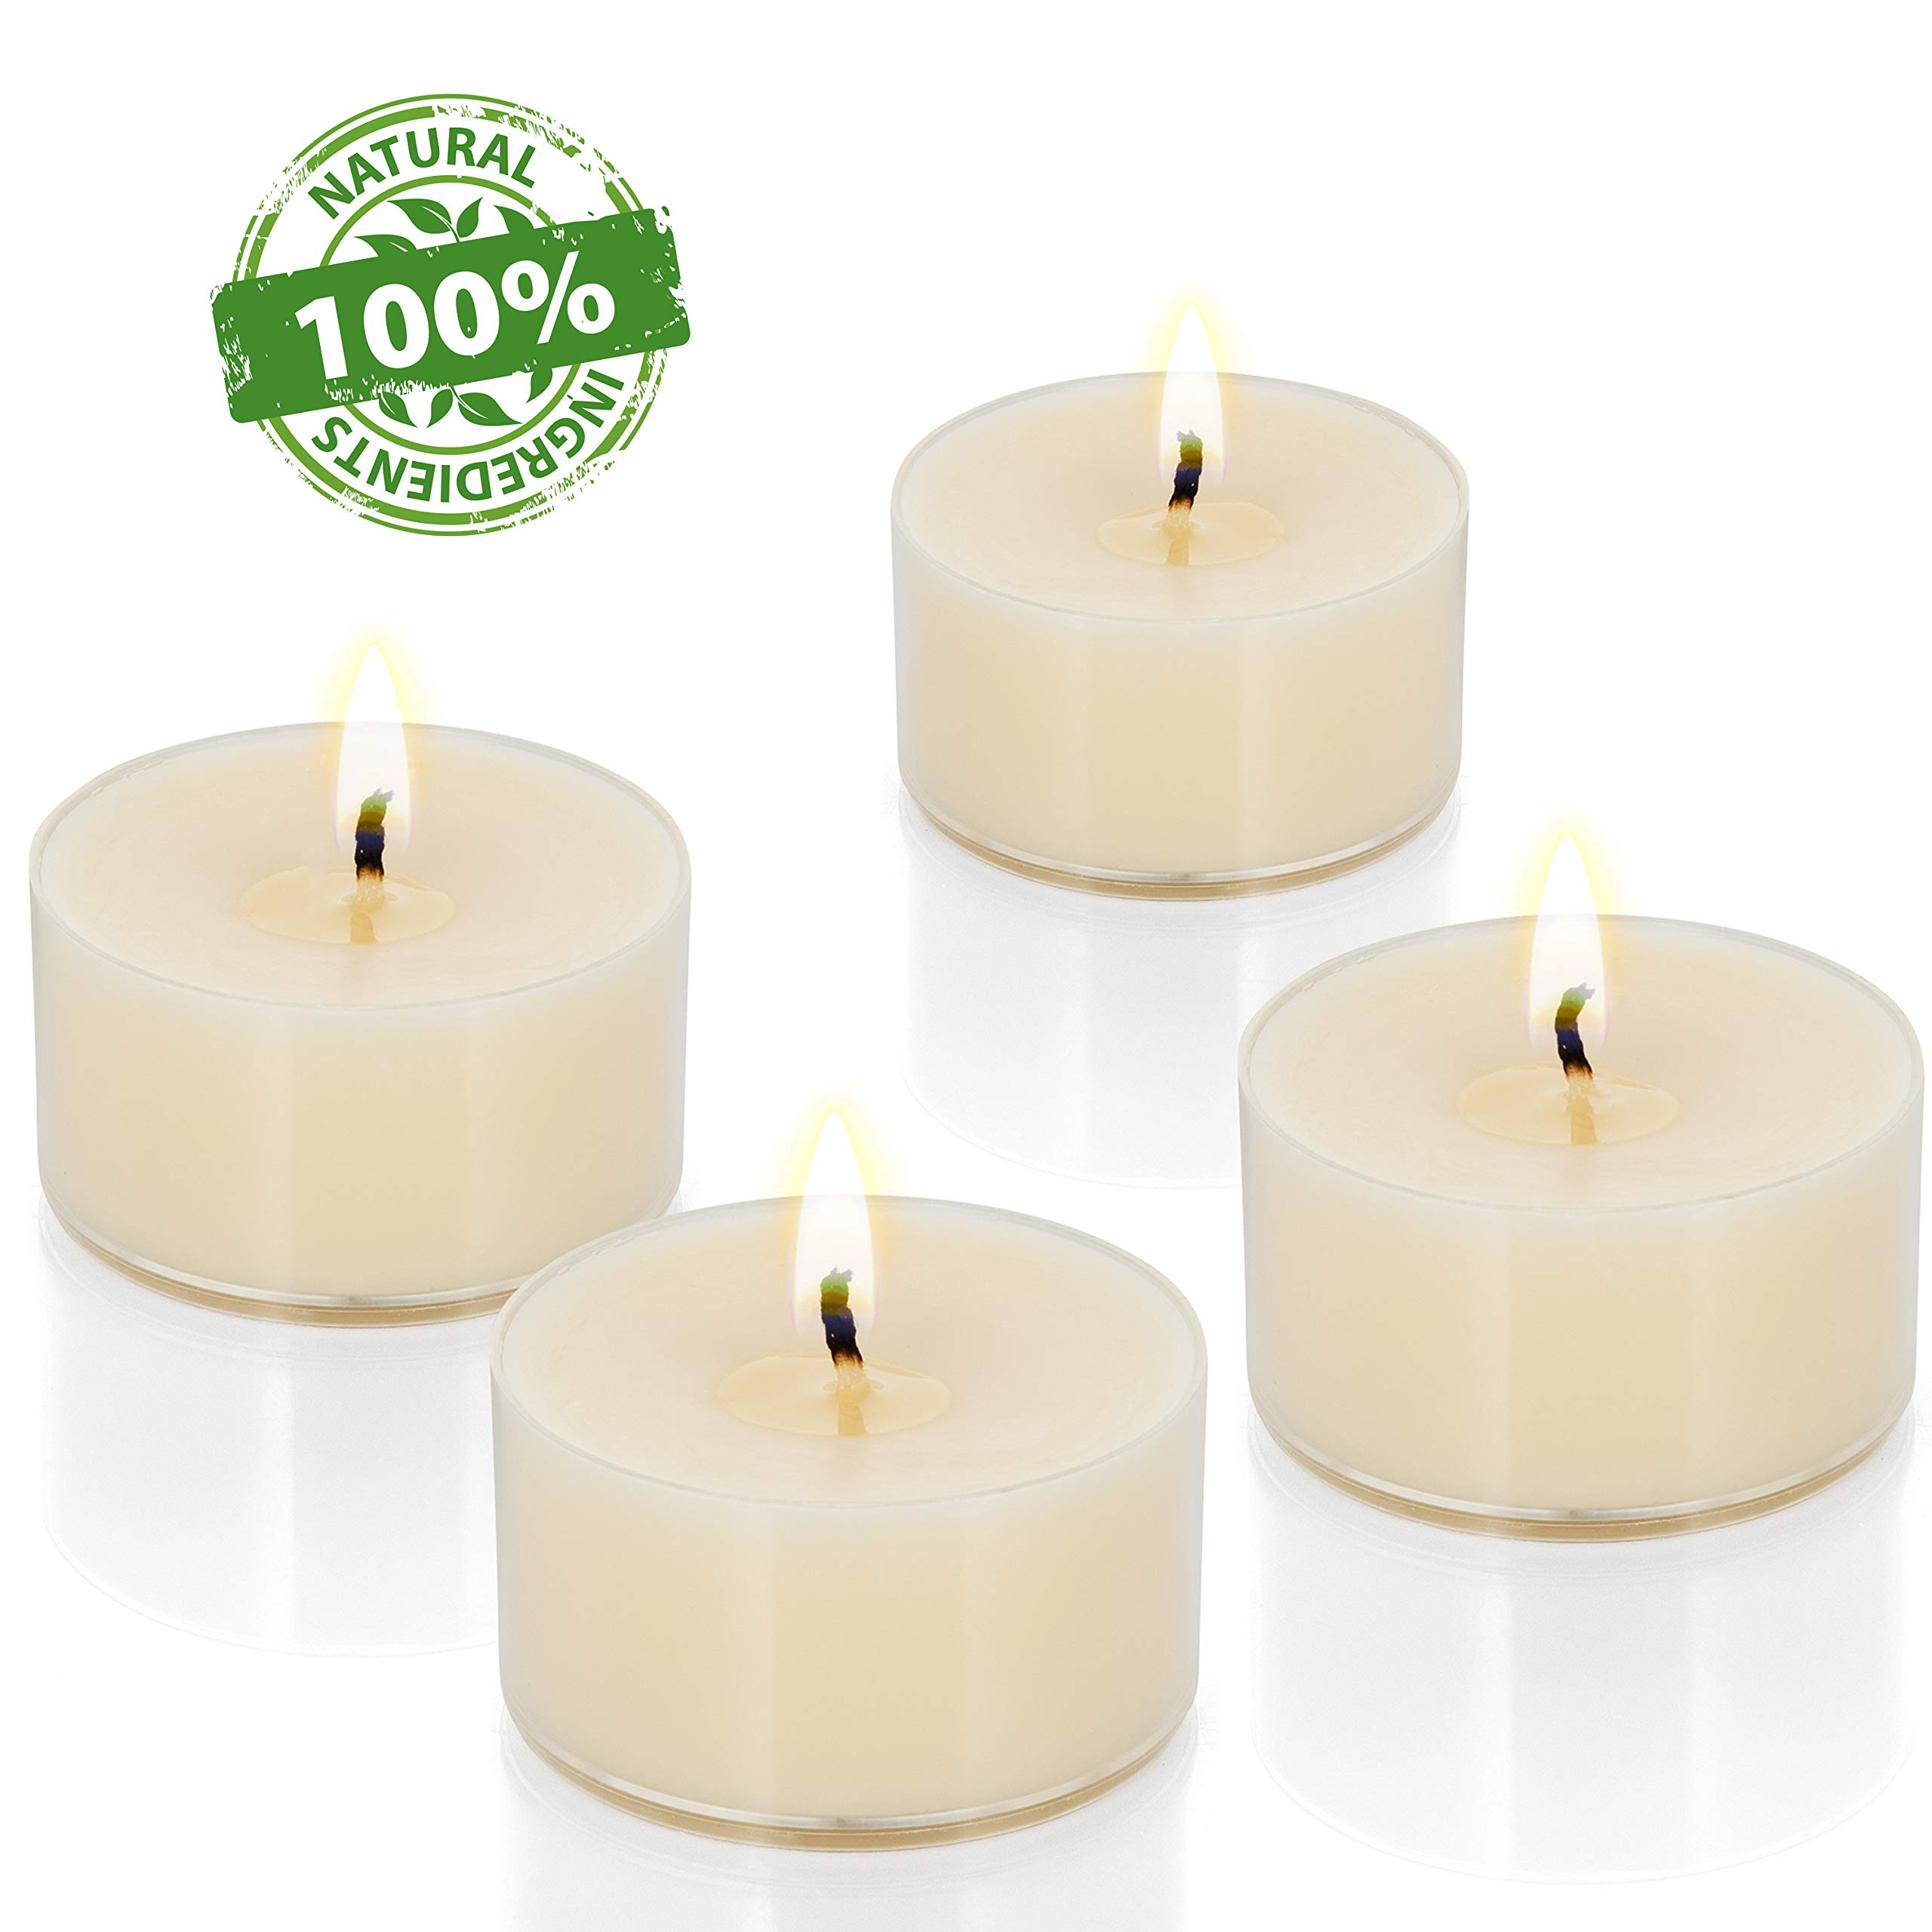 100 Natural Tea Light Candles Ivory Pure Canola Wax Paraffin Free 5 Hour Eco-Friendly Unscented in Clear Plastic Cup Holders Dye Free Poured in USA... by Candle Charisma